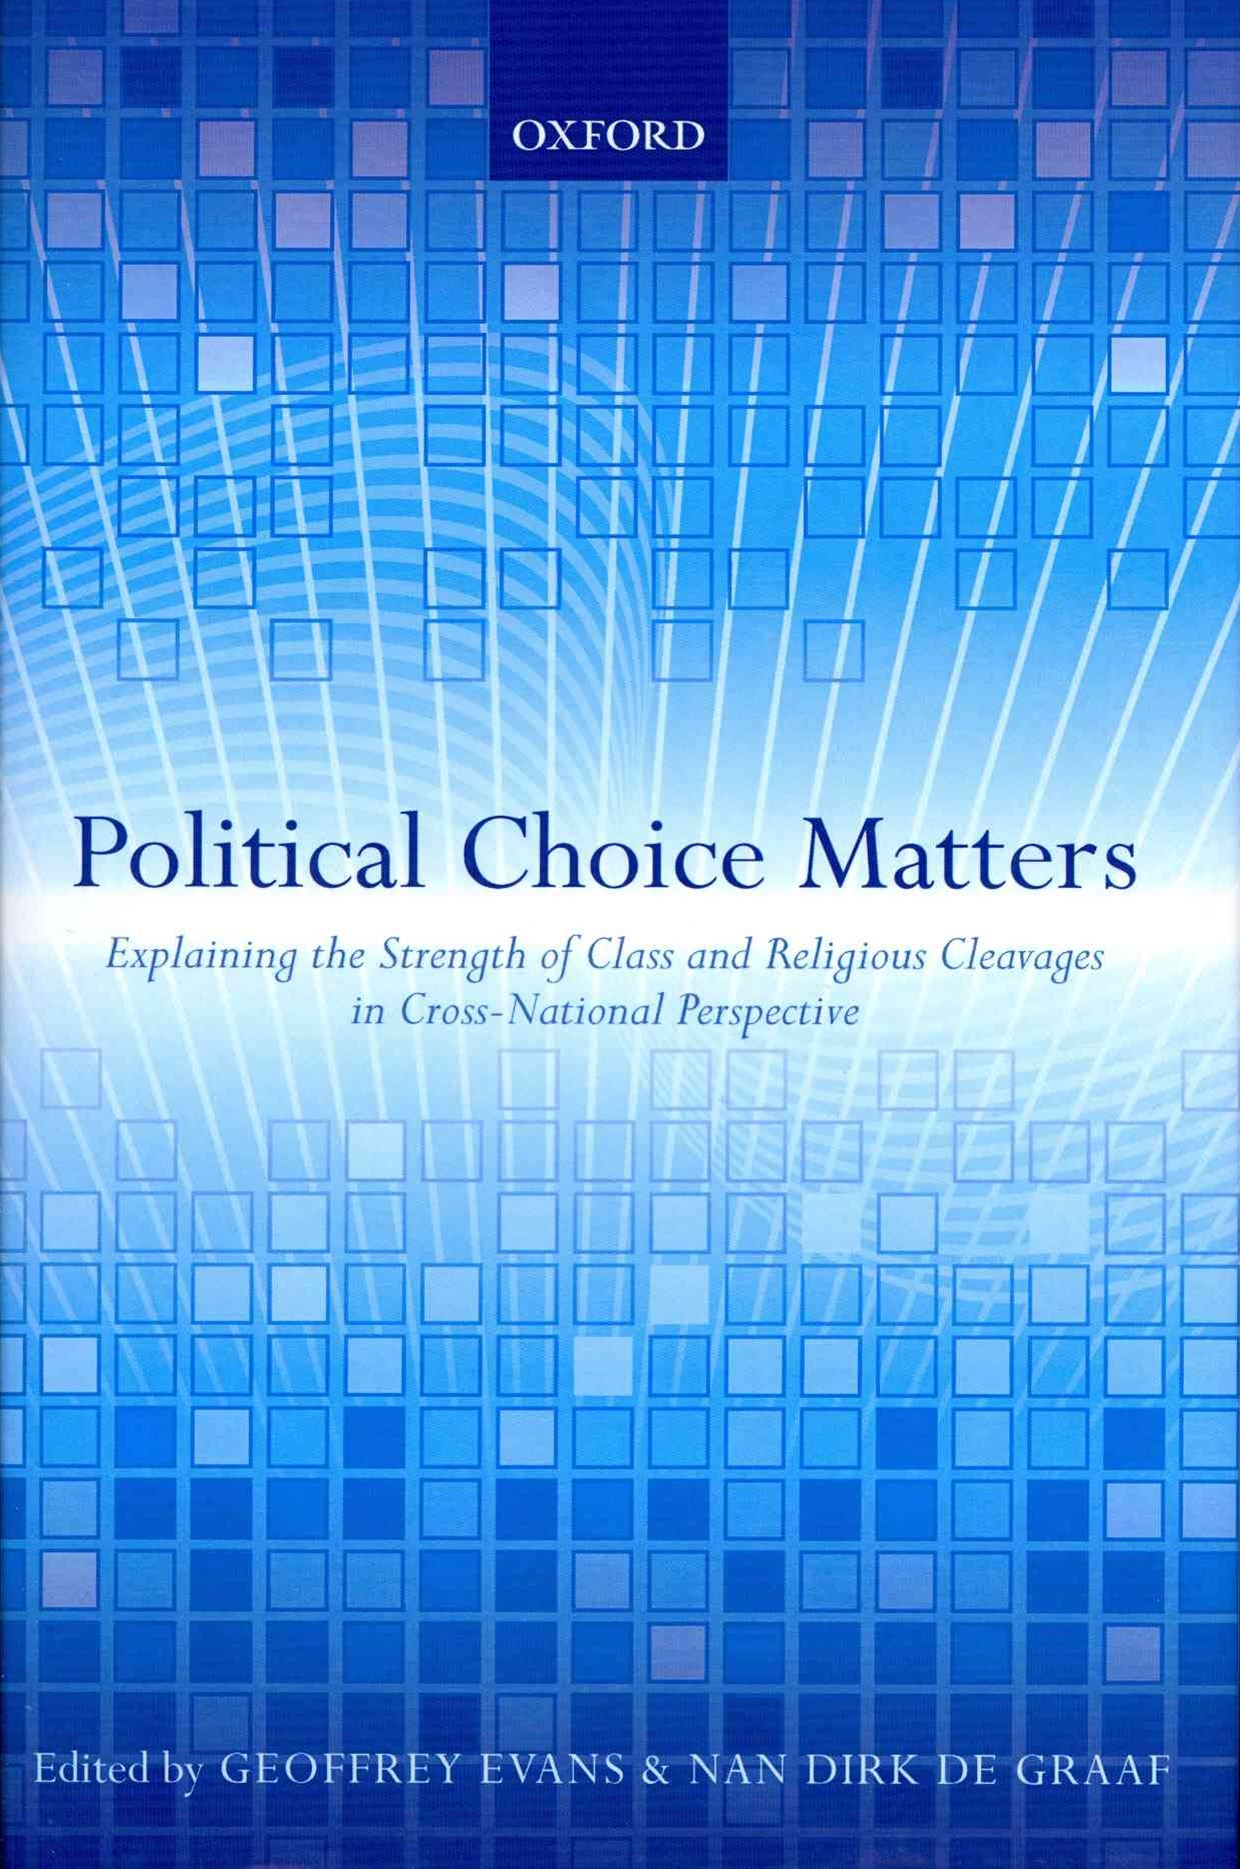 Political Choice Matters: Explaining the Strength of Class and Religious